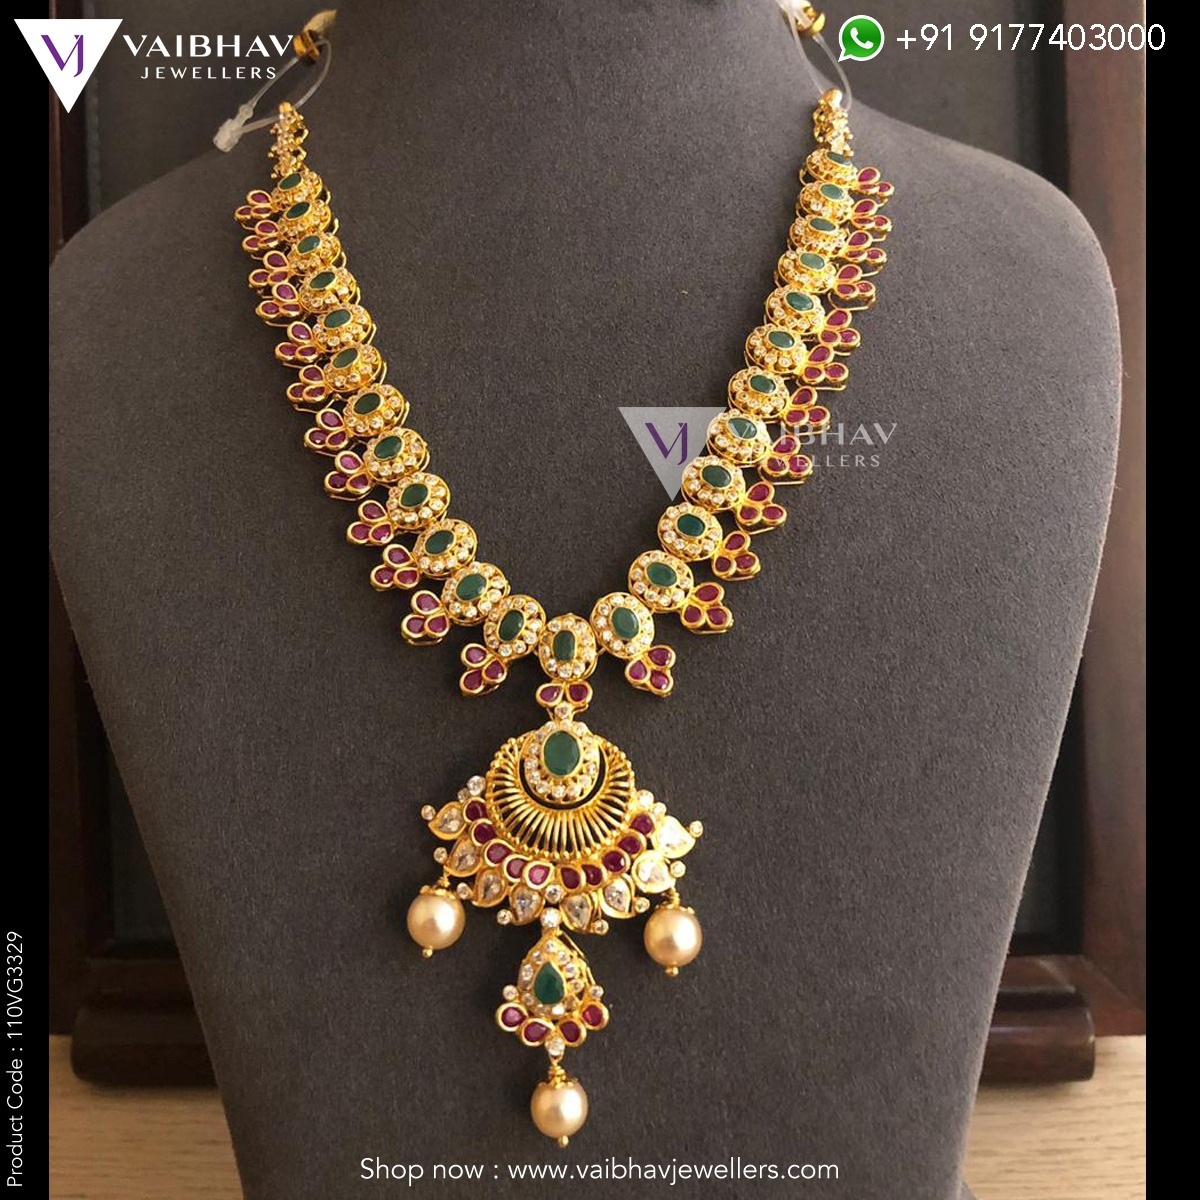 South Indian 22k Gold Jewellery Online